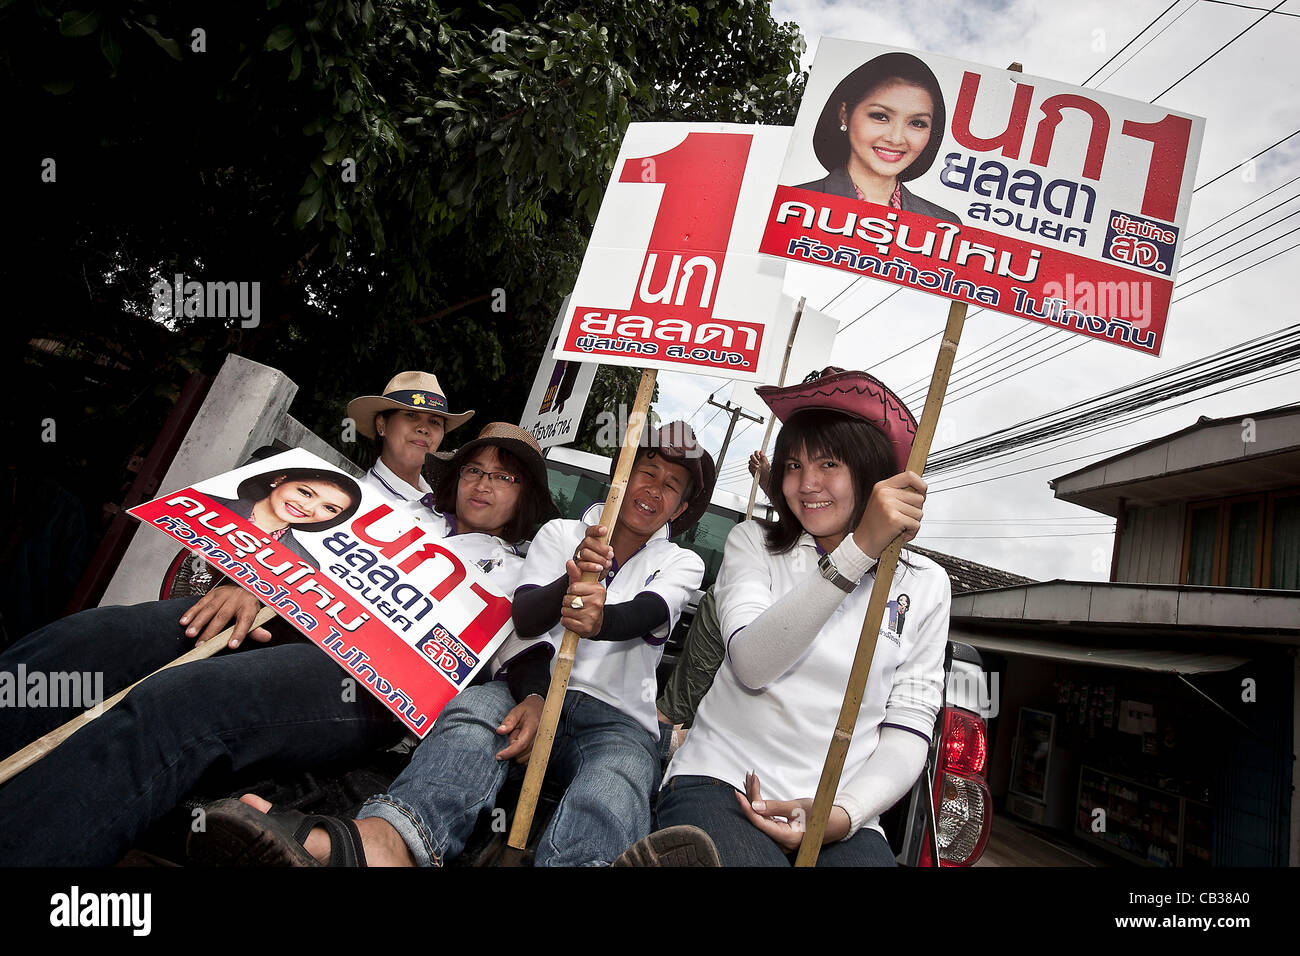 Supporters of the transgendered politician YOLLANDA 'NOK' SUANYOT at the downtown streets during the last - Stock Image